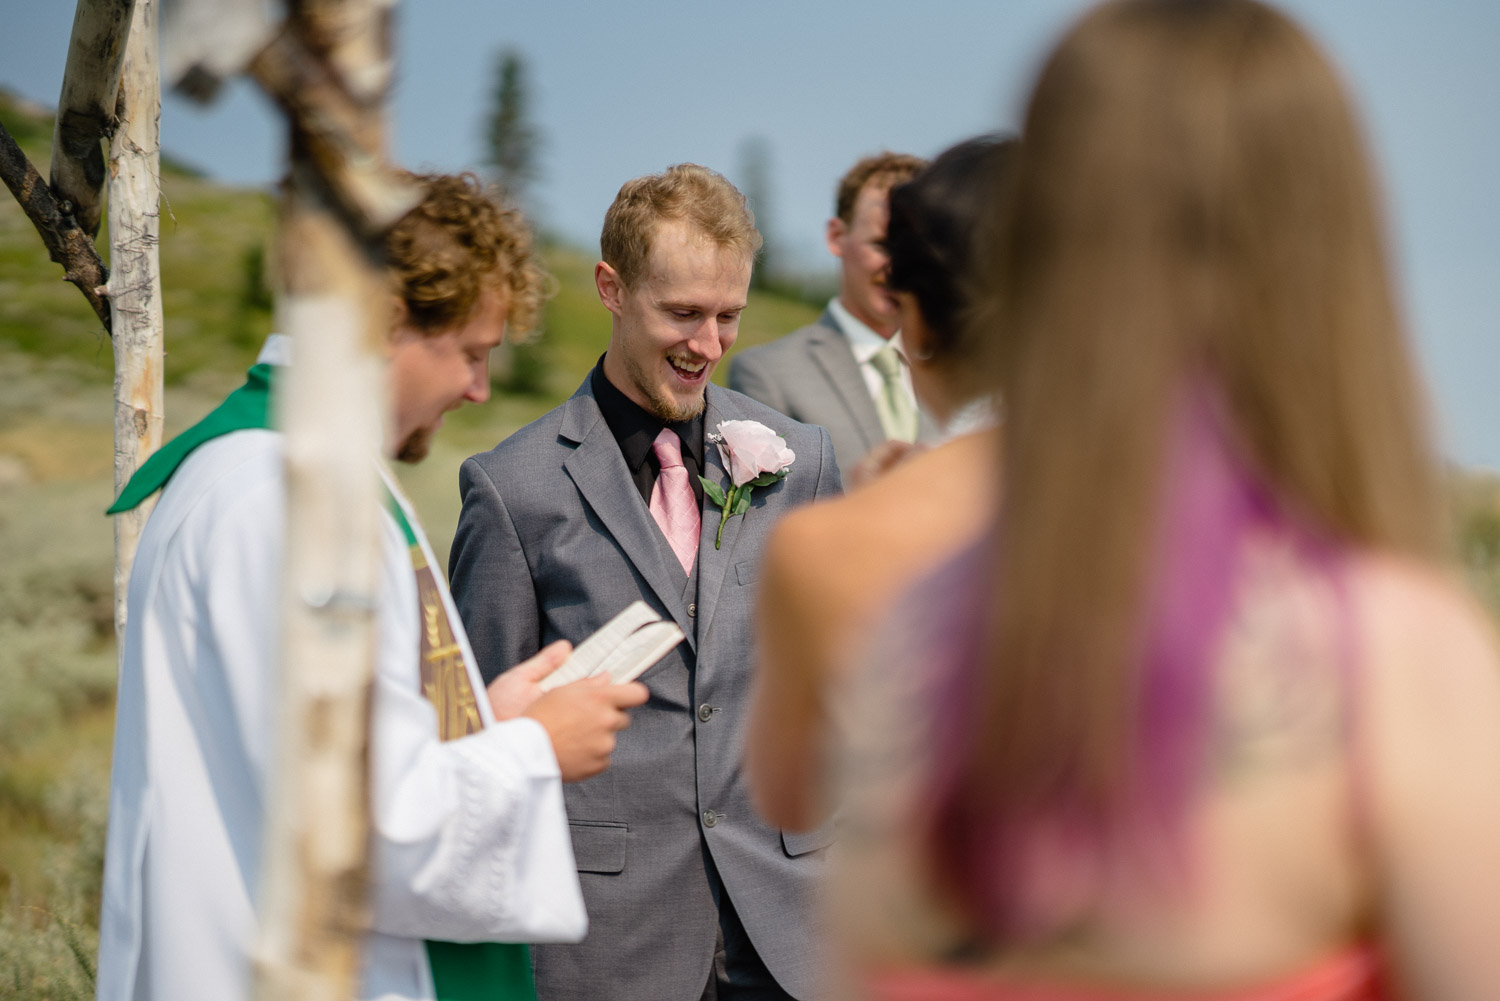 focus on groom by outdoor altar